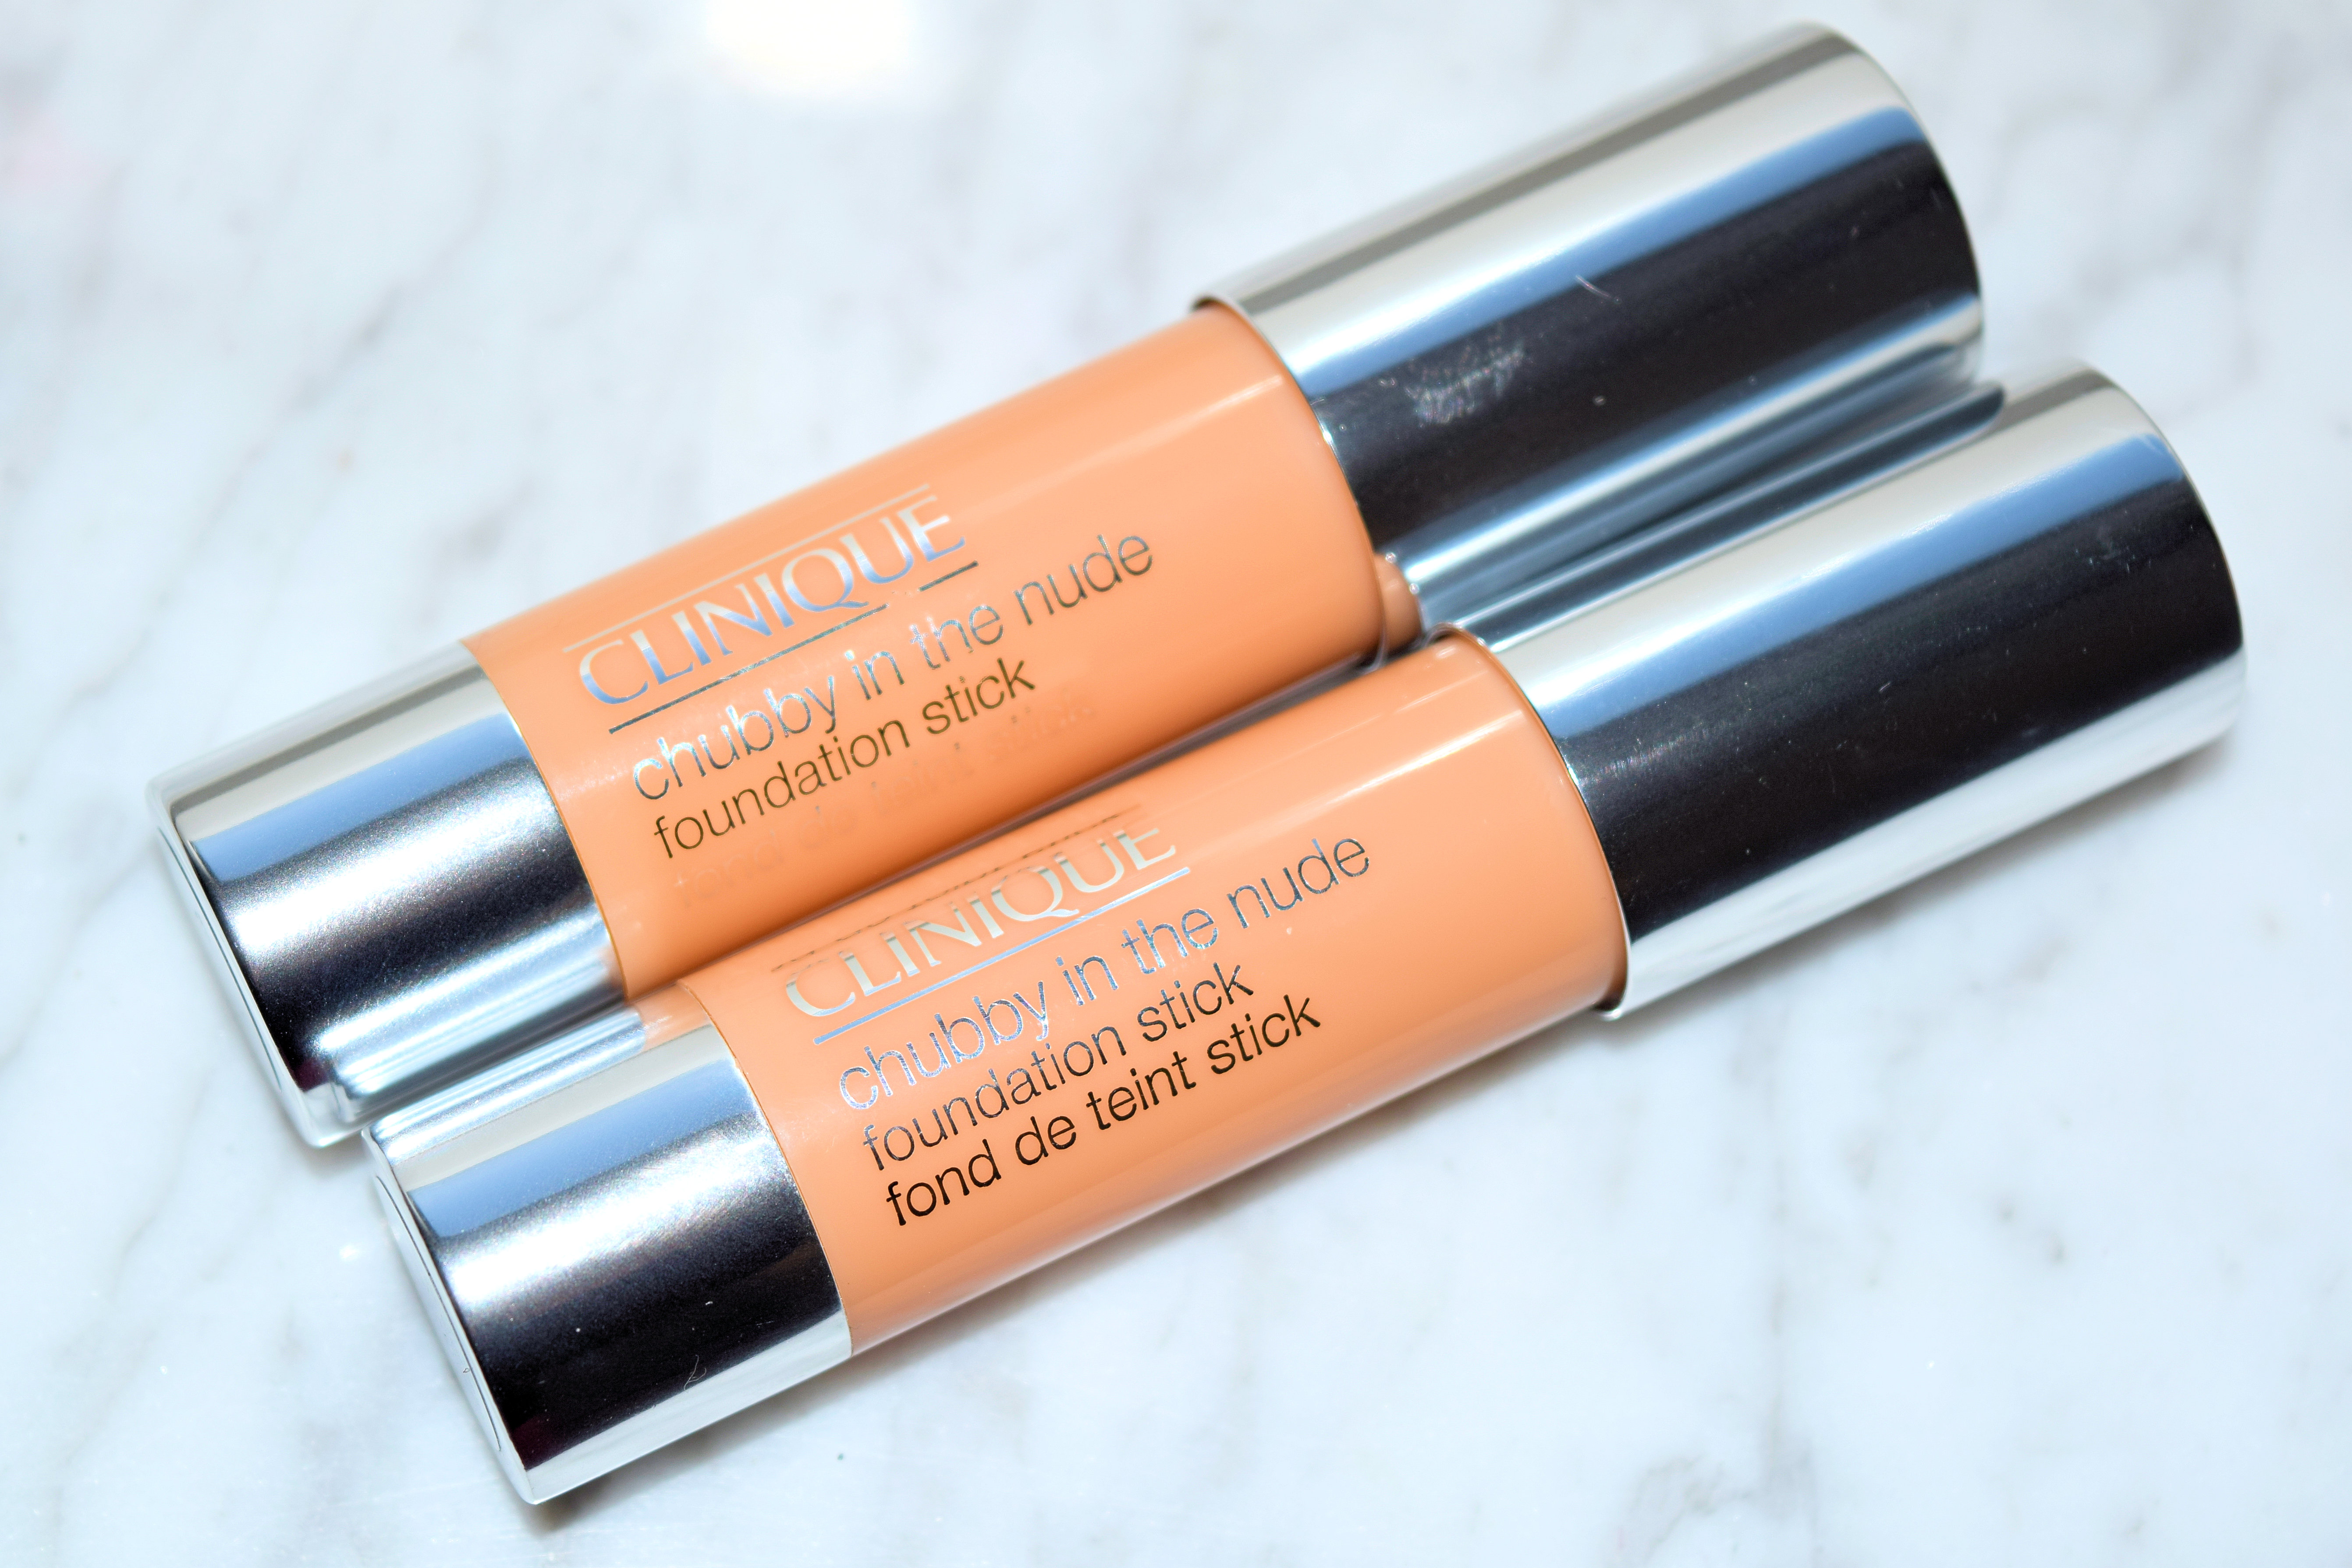 Clinique Chubby In The Nude Foundation Stick - # 06